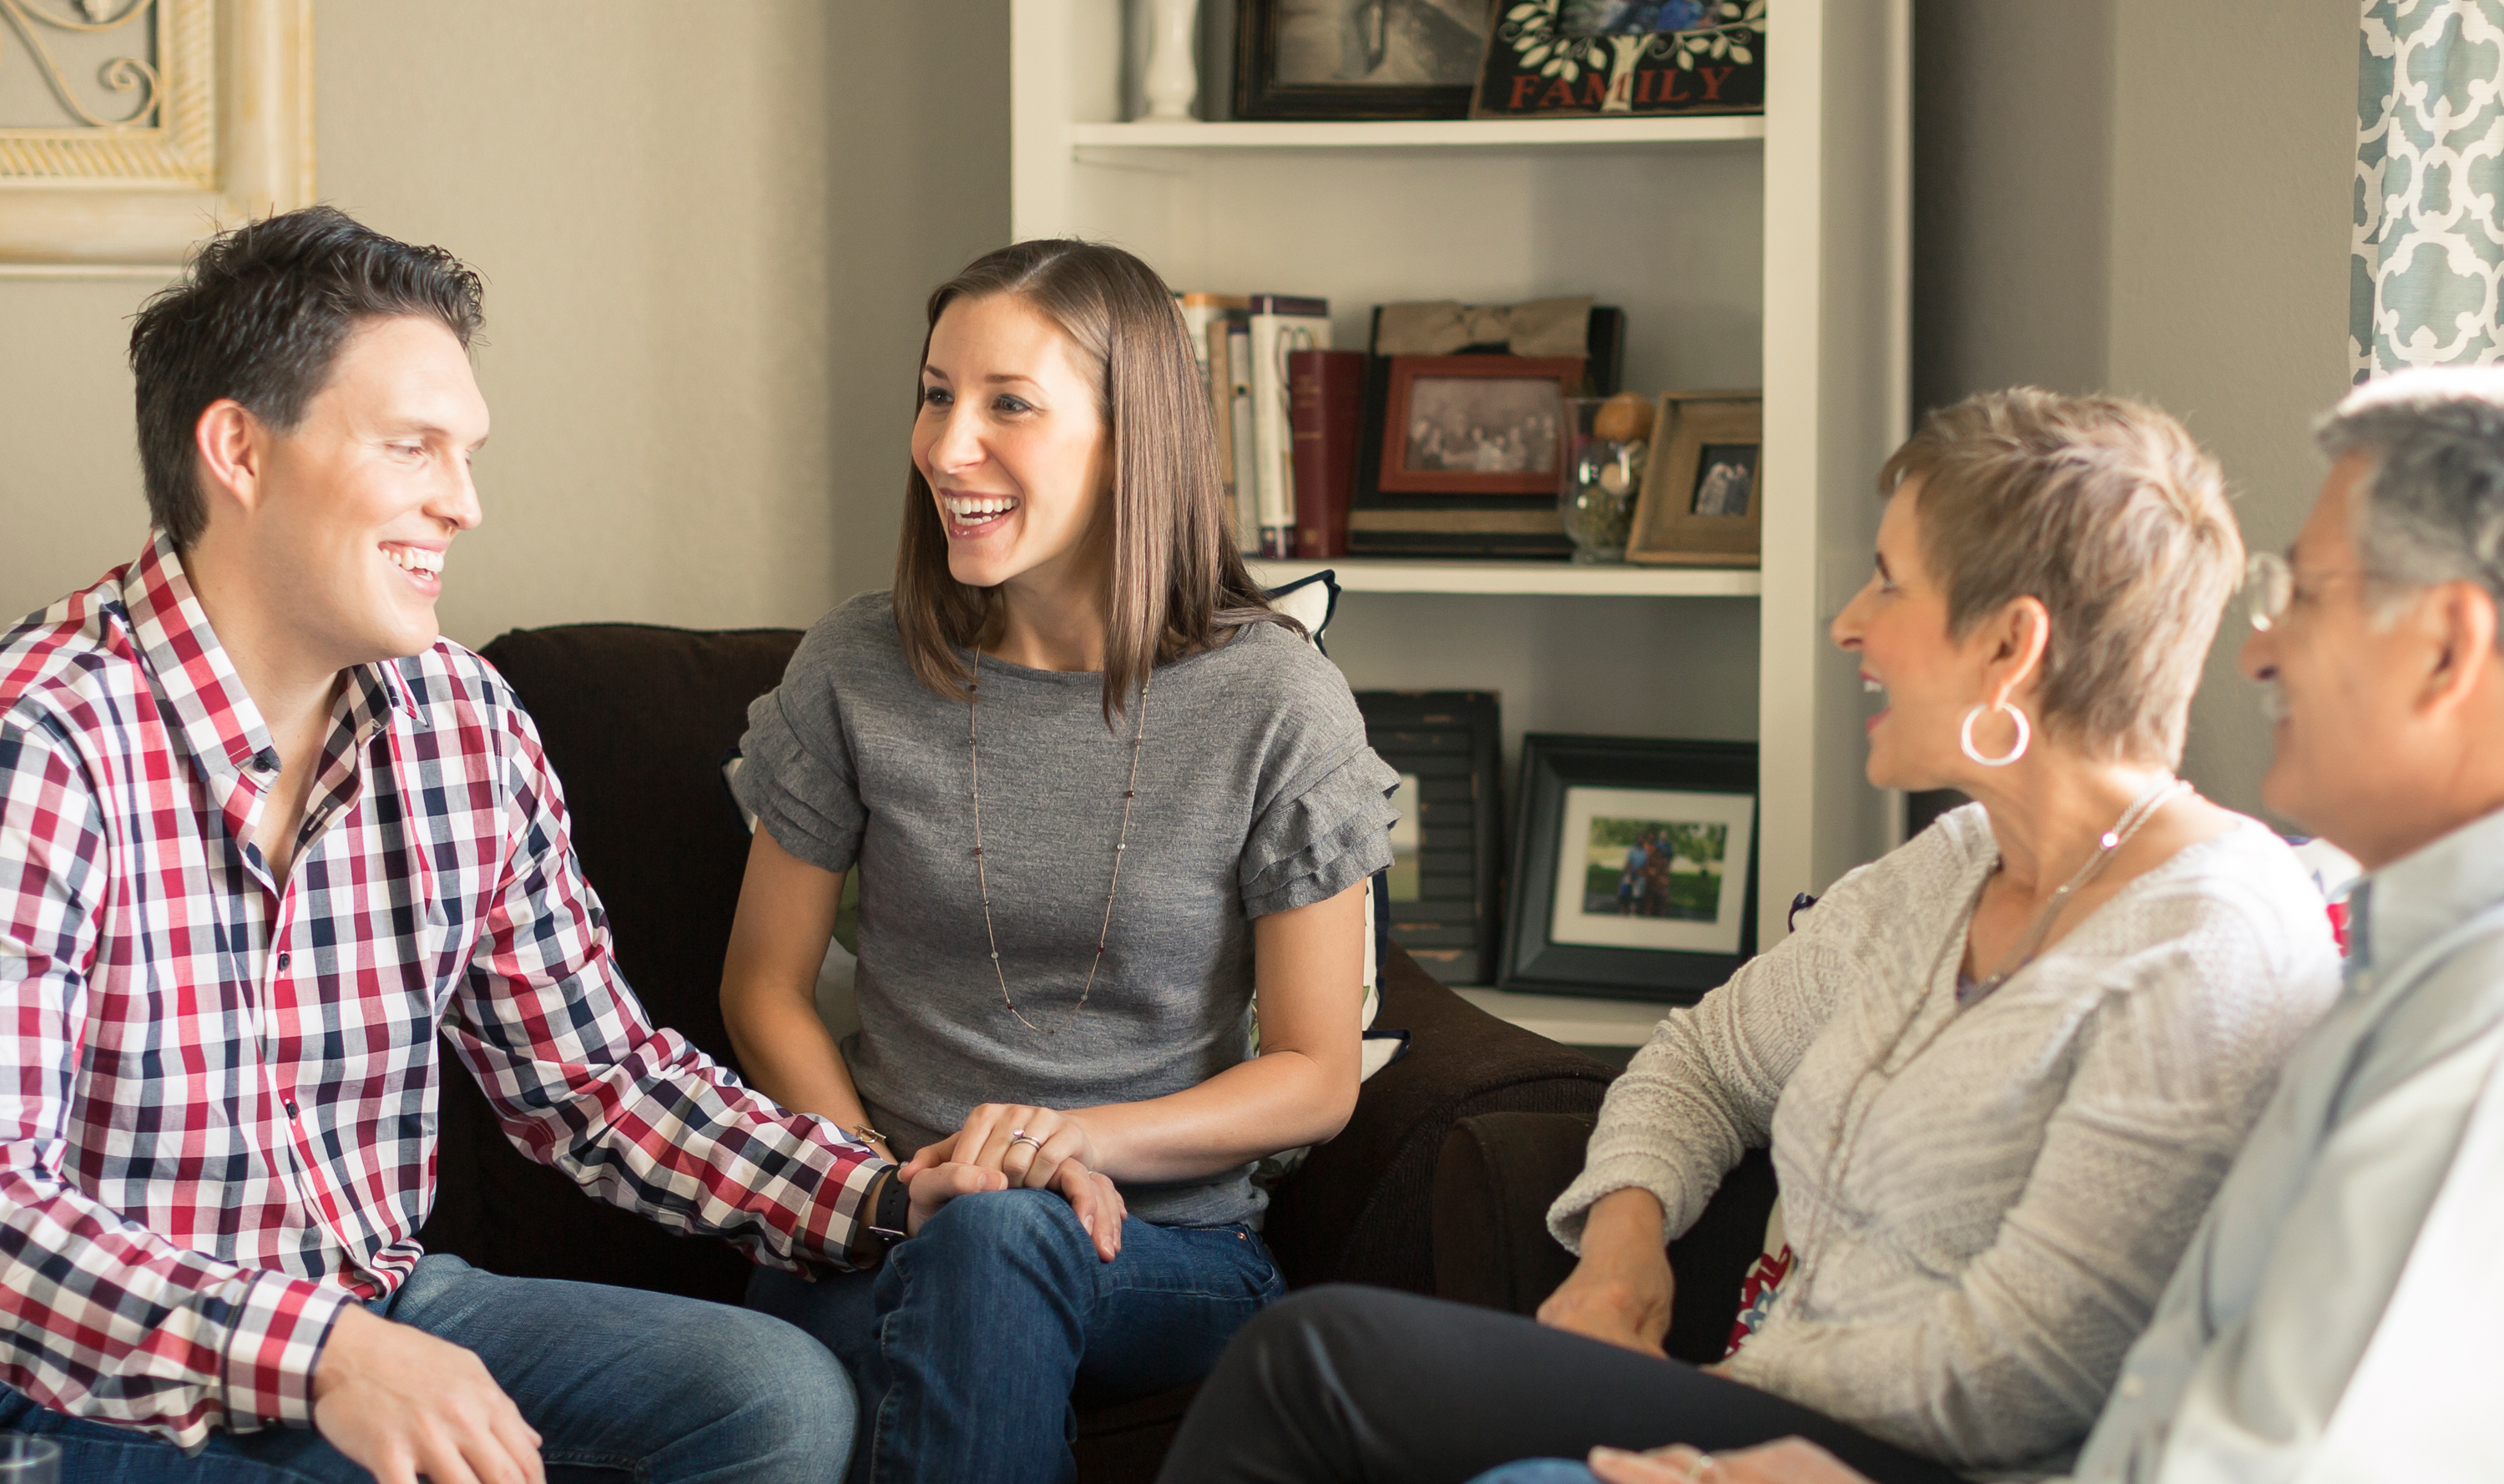 A younger couple sits with an older couple on couches in a living room.